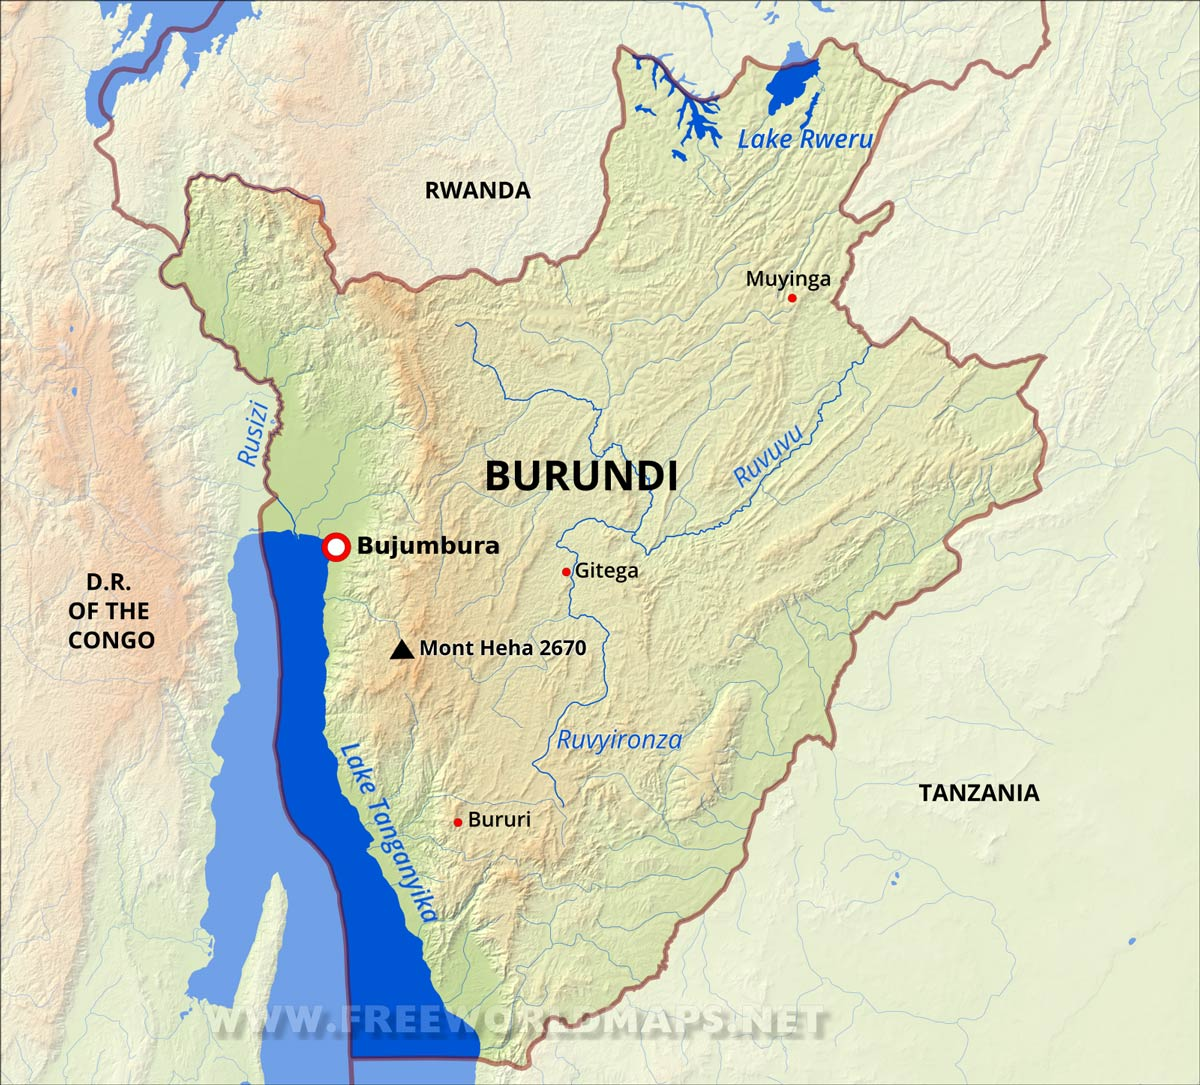 Burundi Physical Map - bujumbura map